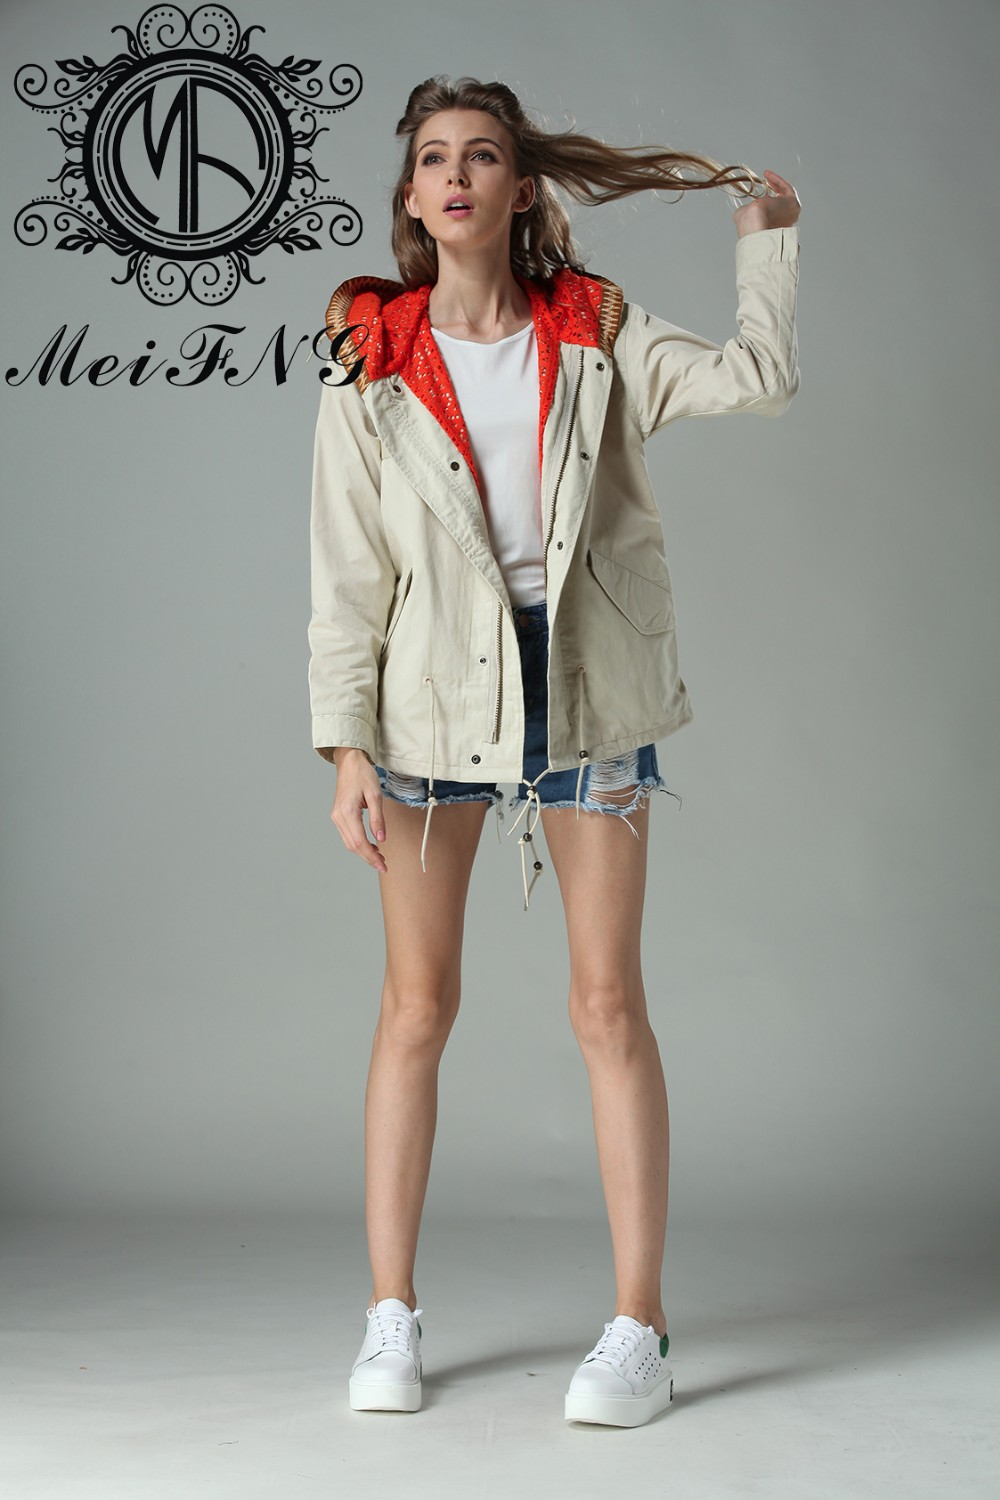 Latest Design Hot Fashion Girls Fancy Fall Casual Jacket